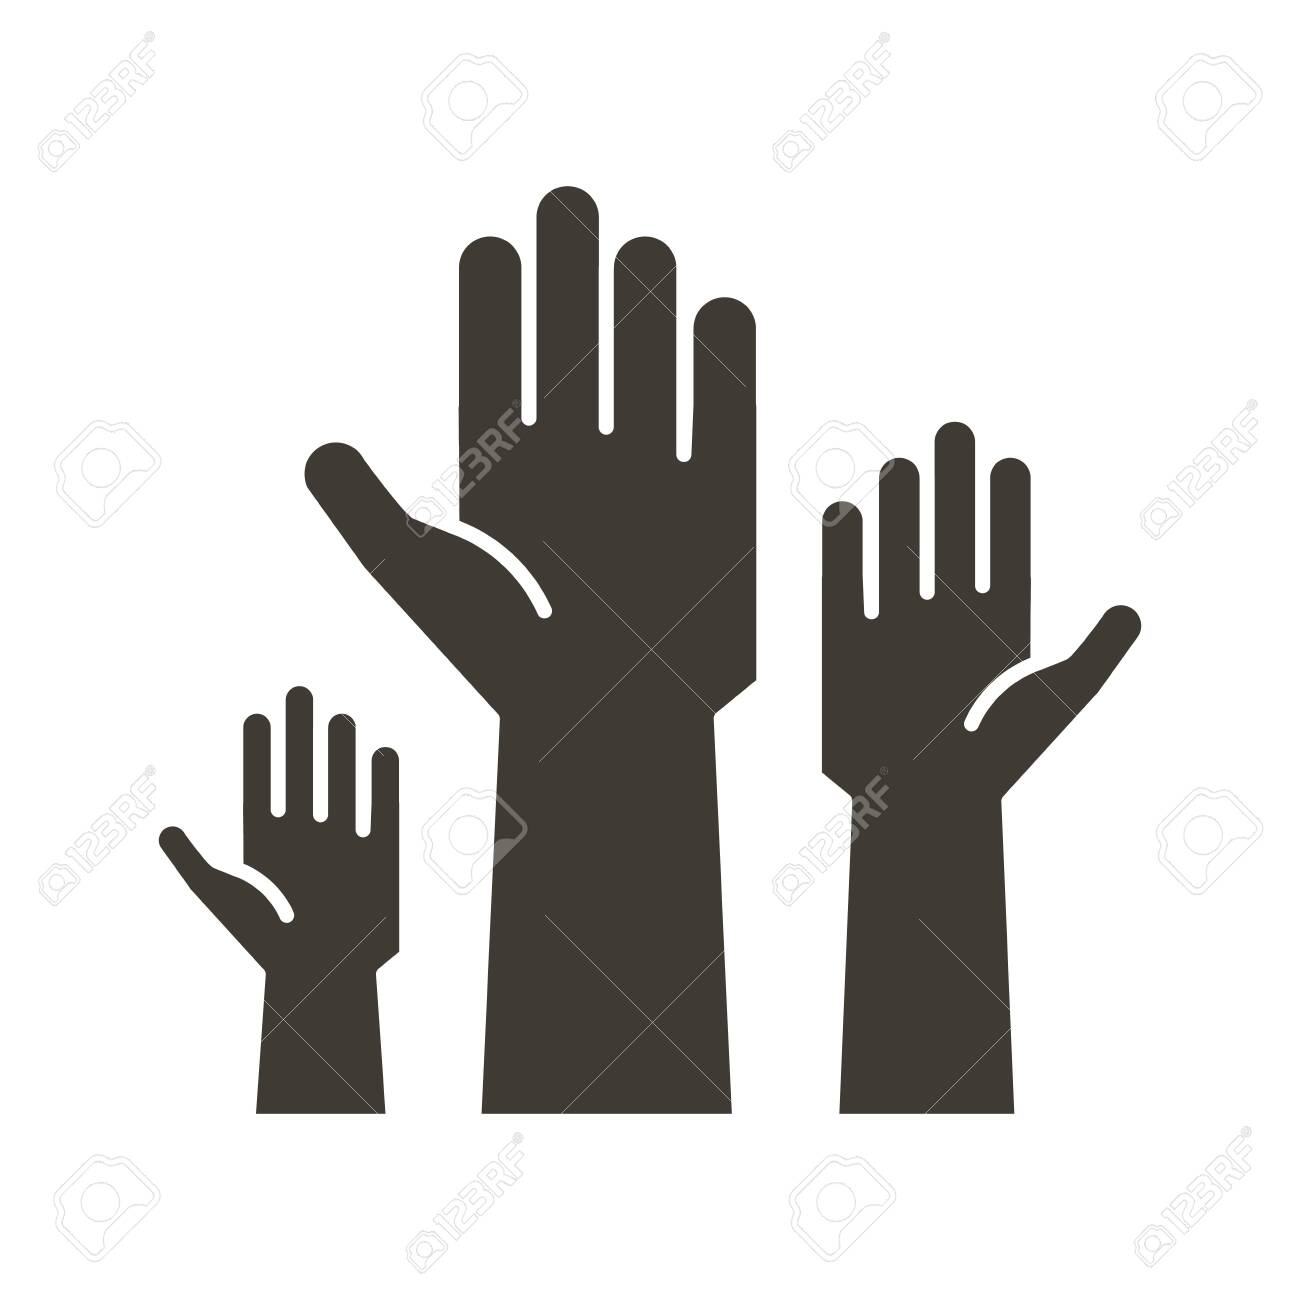 Volunteers and charity work. Raised helping hands. Vector flat glyph icon illustrations with a crowd of people ready and available to help and contribute. Positive foundation, business, service. - 134503195